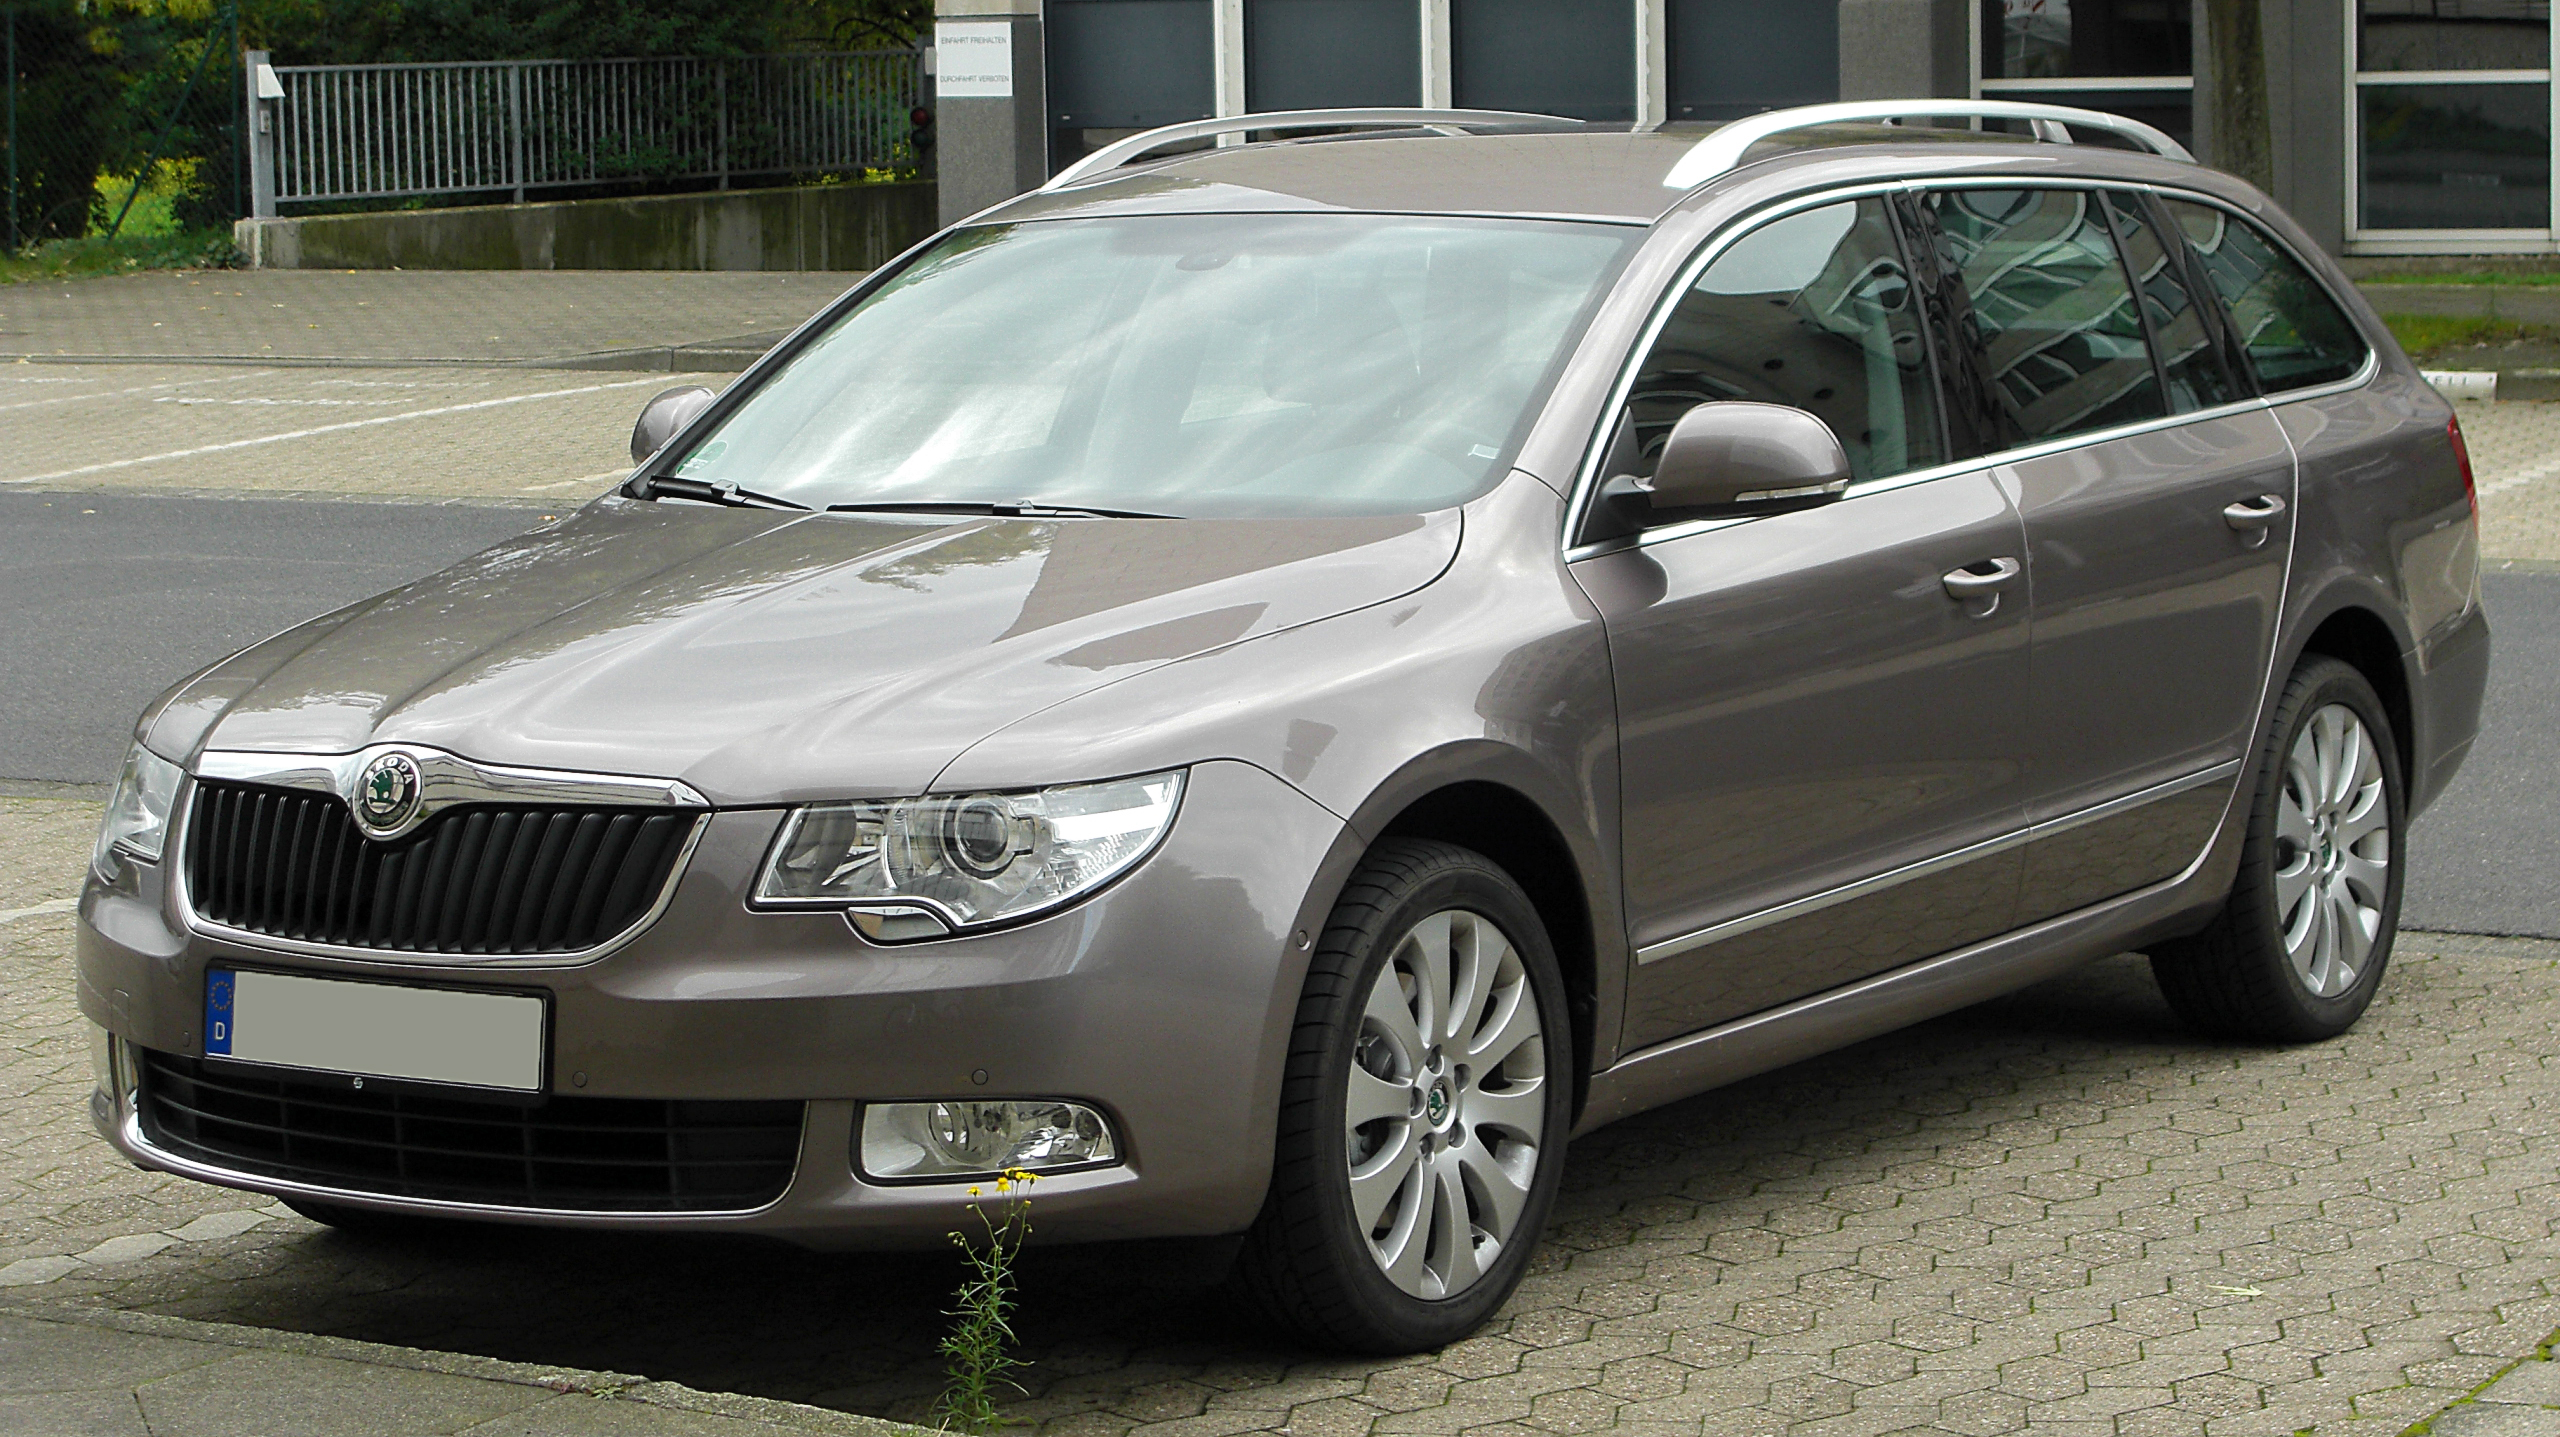 file skoda superb ii combi front wikimedia commons. Black Bedroom Furniture Sets. Home Design Ideas